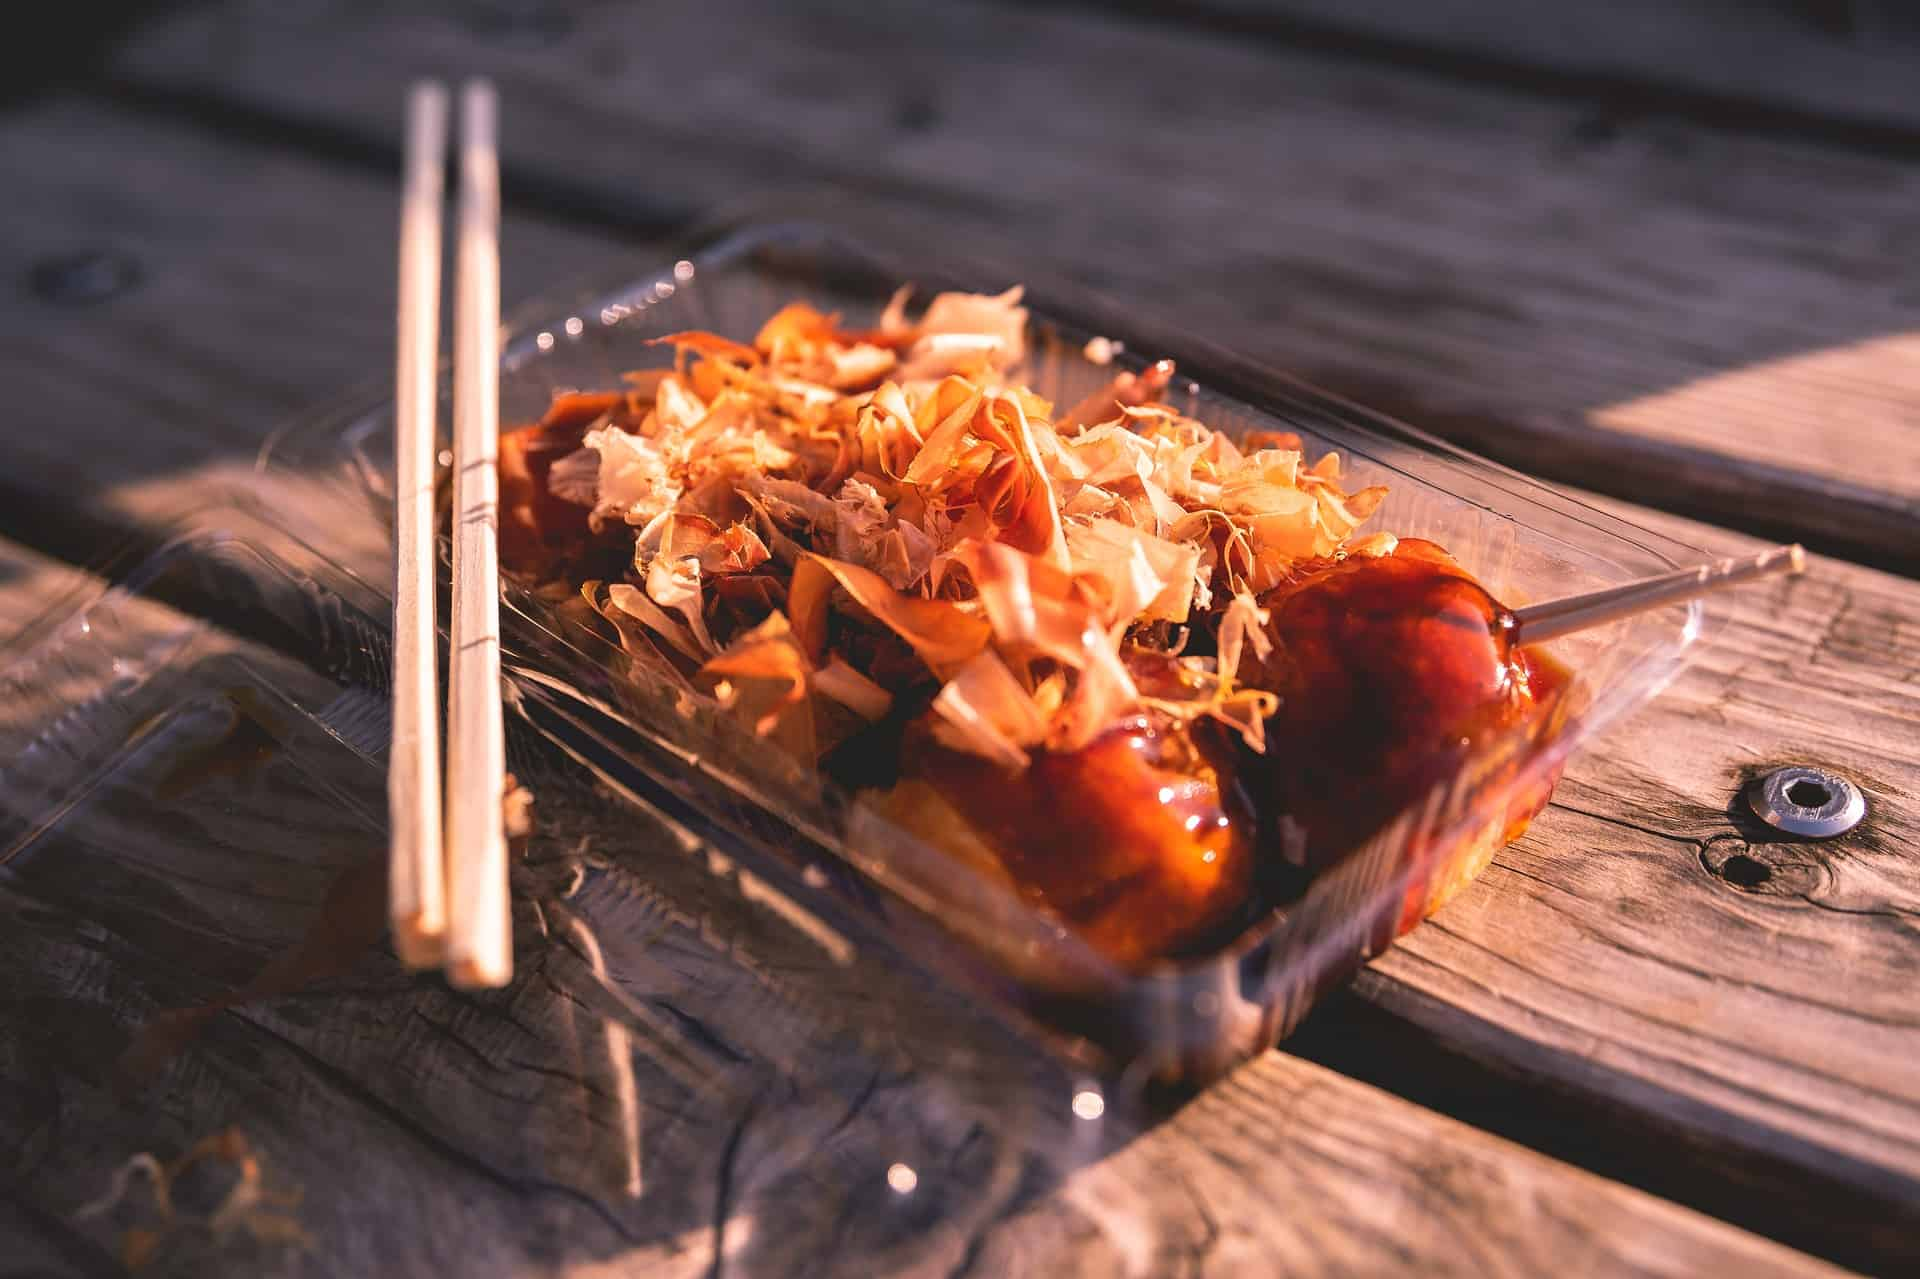 a portion of takoyaki